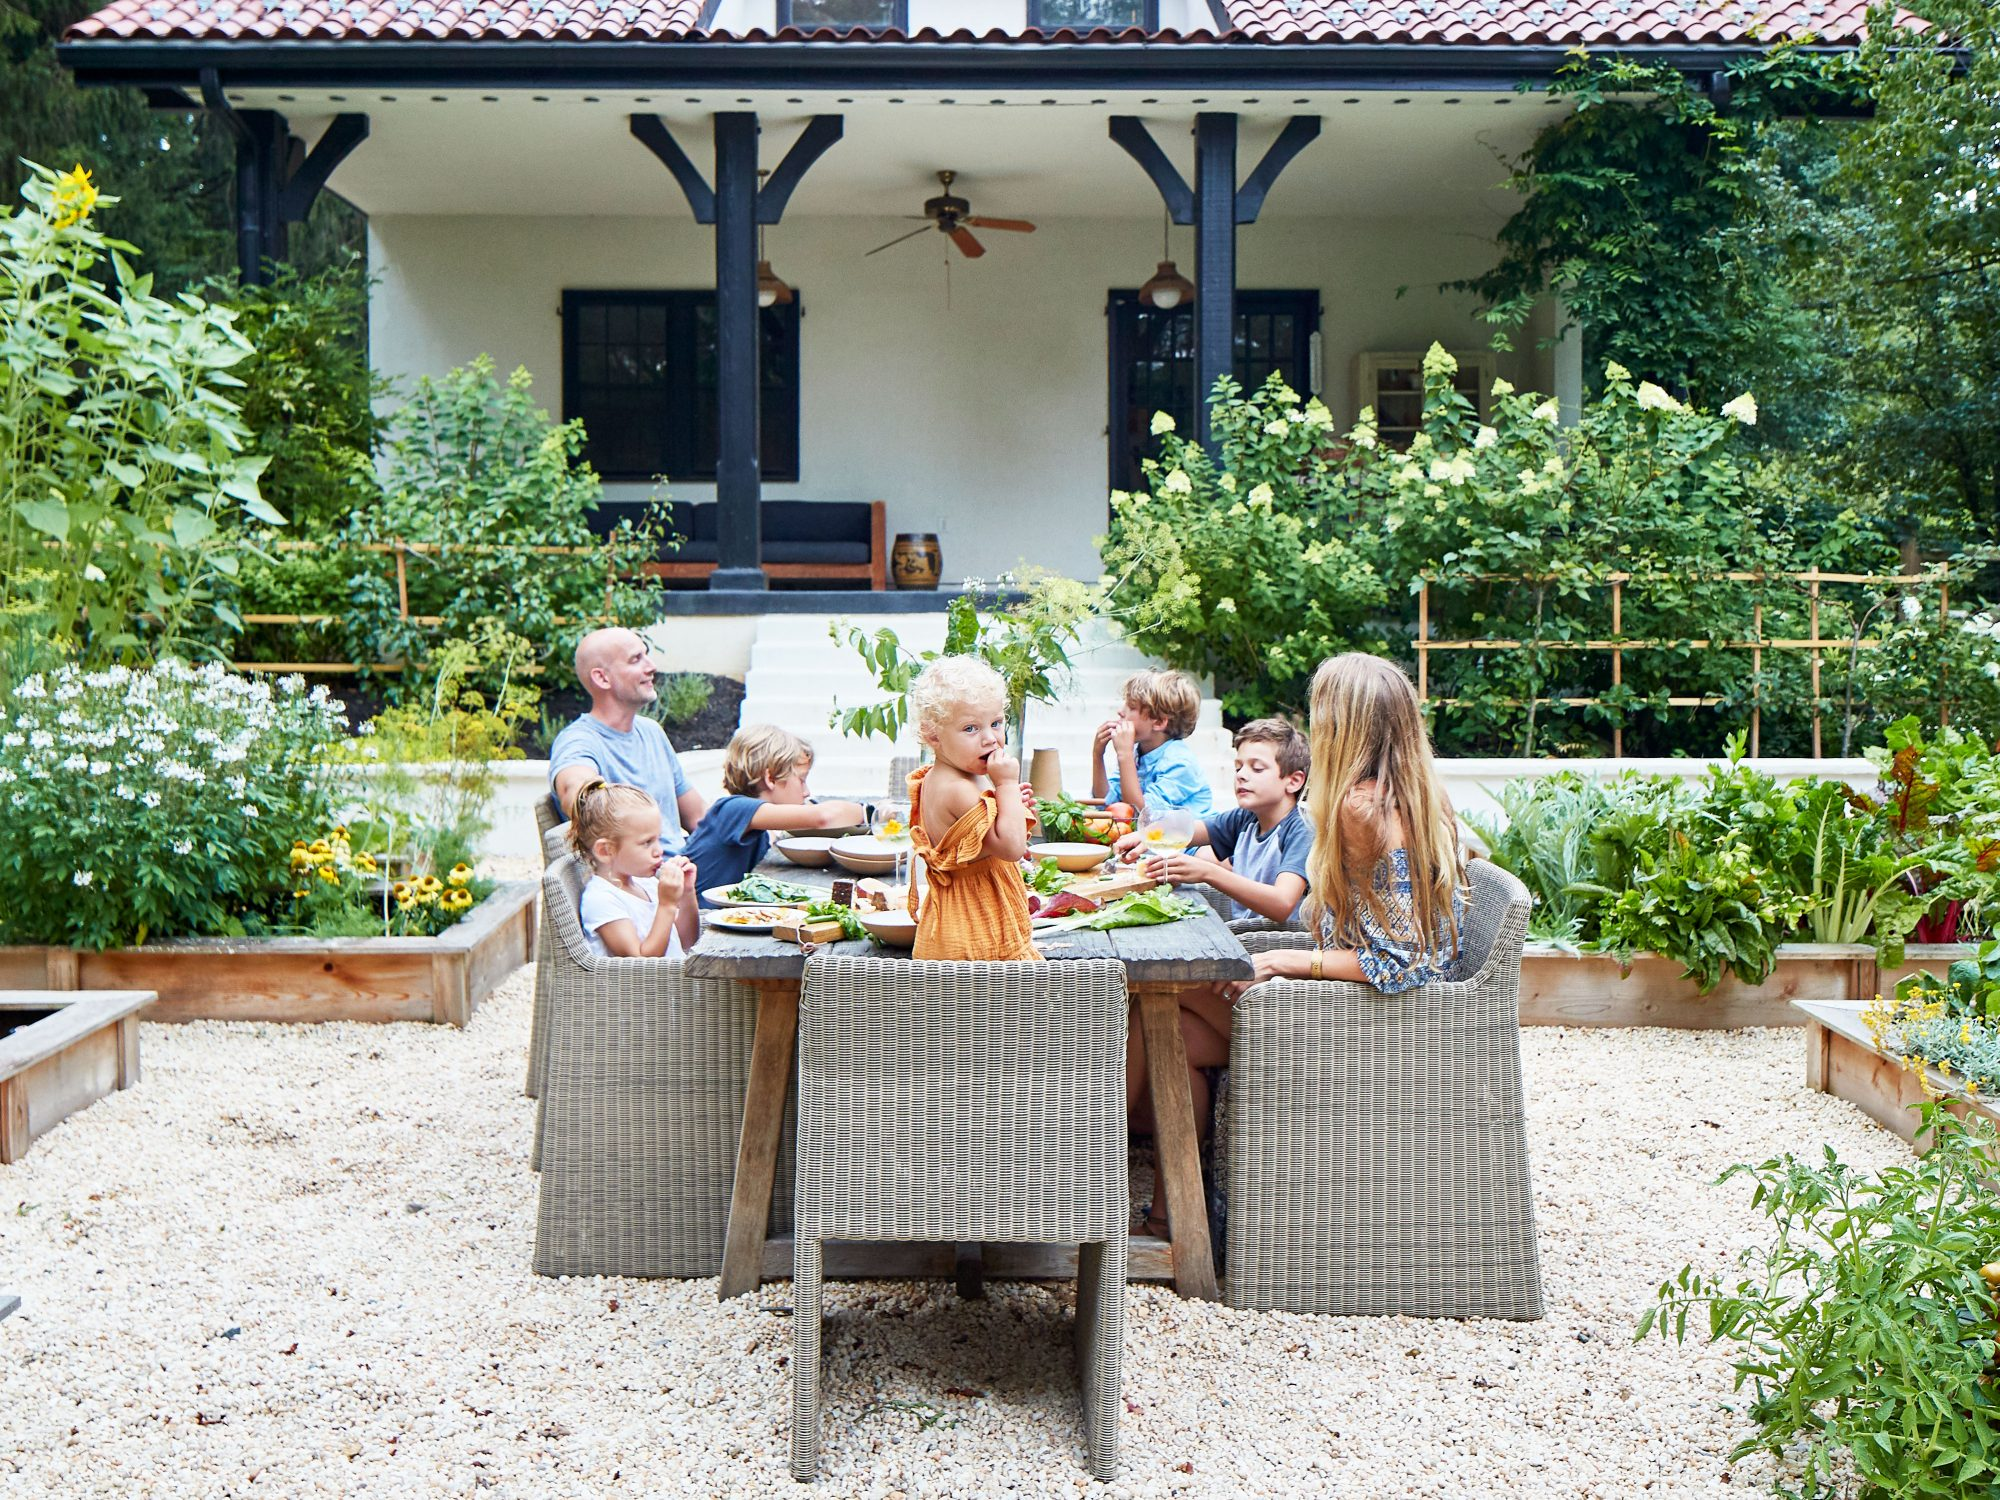 Lauren Liess and Family Eating at Outdoor Dining Table in Their Garden